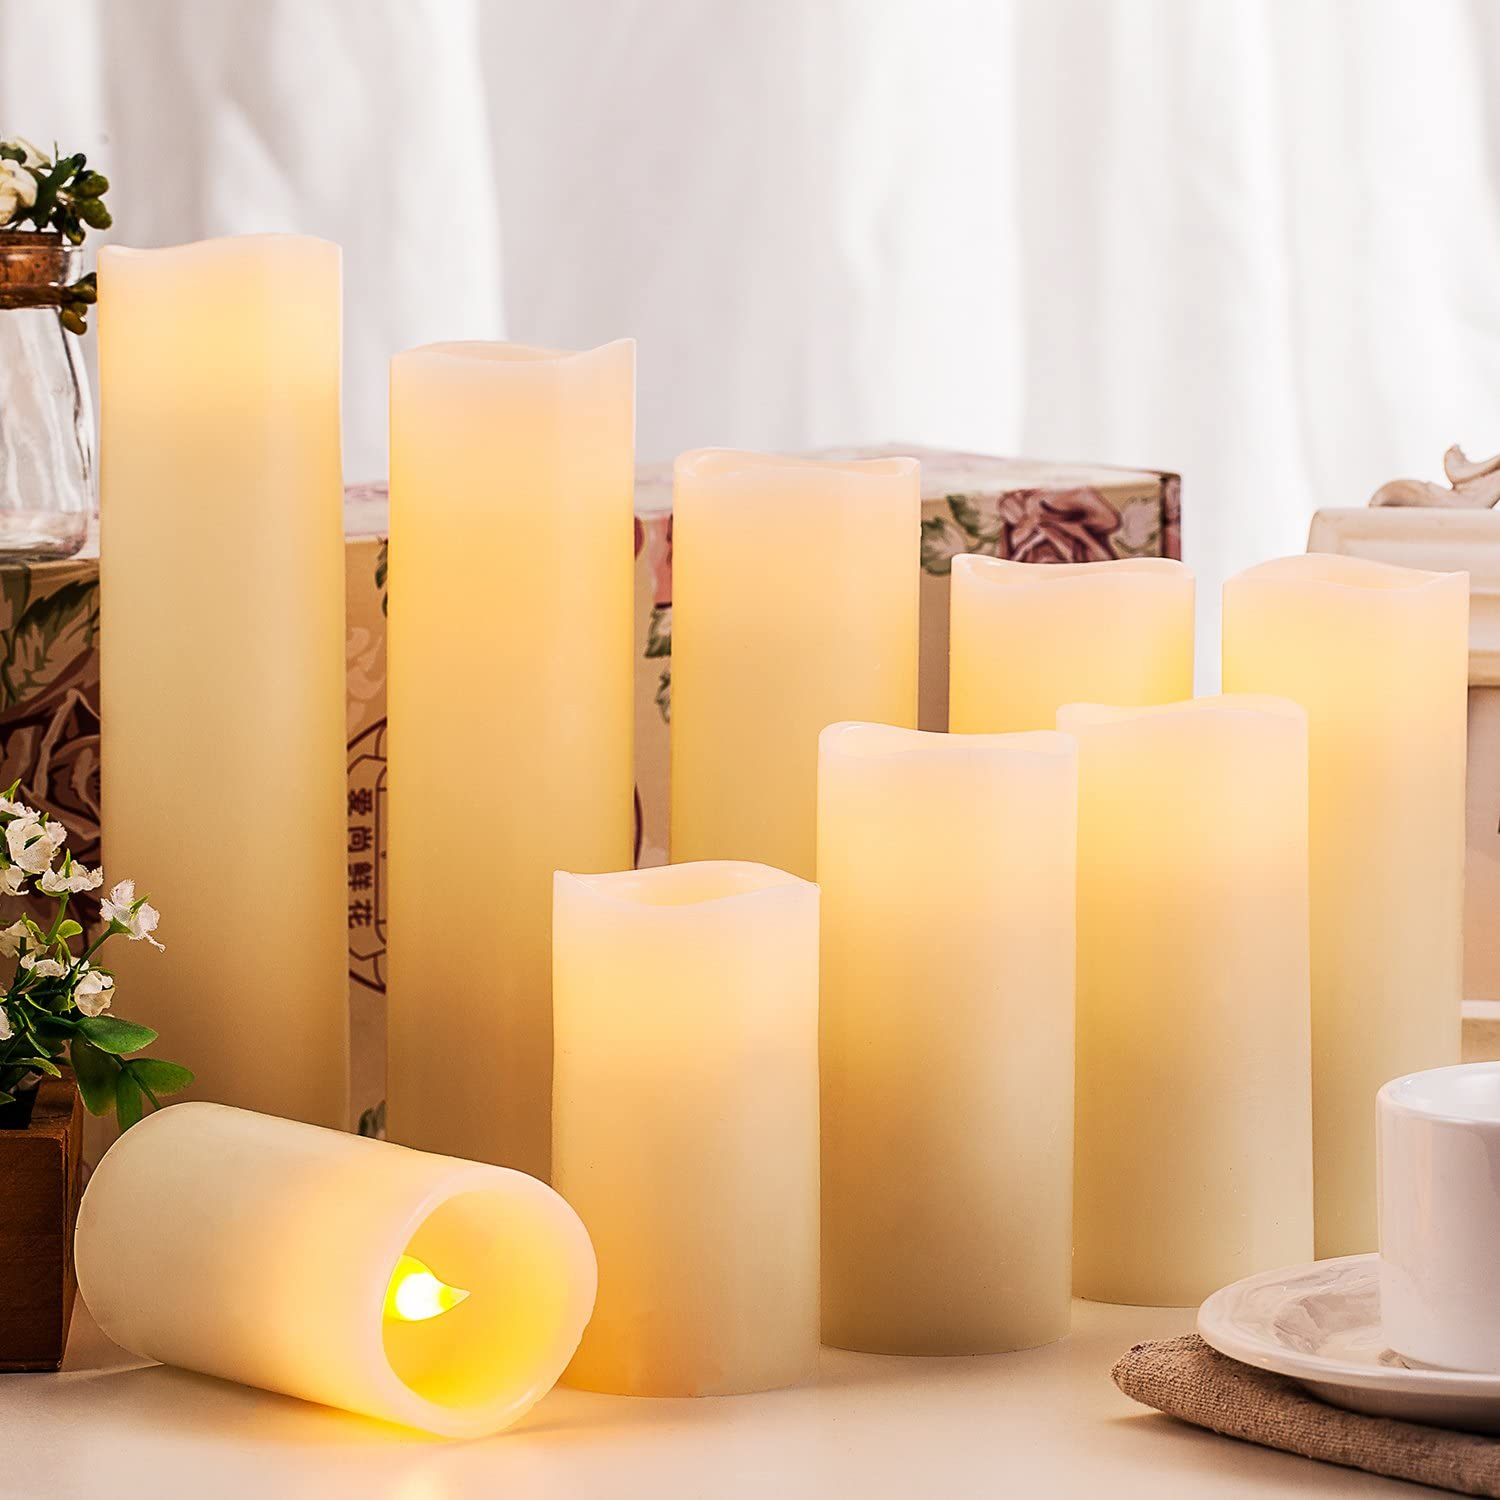 Flameless Candles Battery Operated Candles 4 5 6 7 8 9 Set of 9 Ivory Real Wax Pillar LED Candles with 10-Key Remote and Cycling 24 Hours Timer